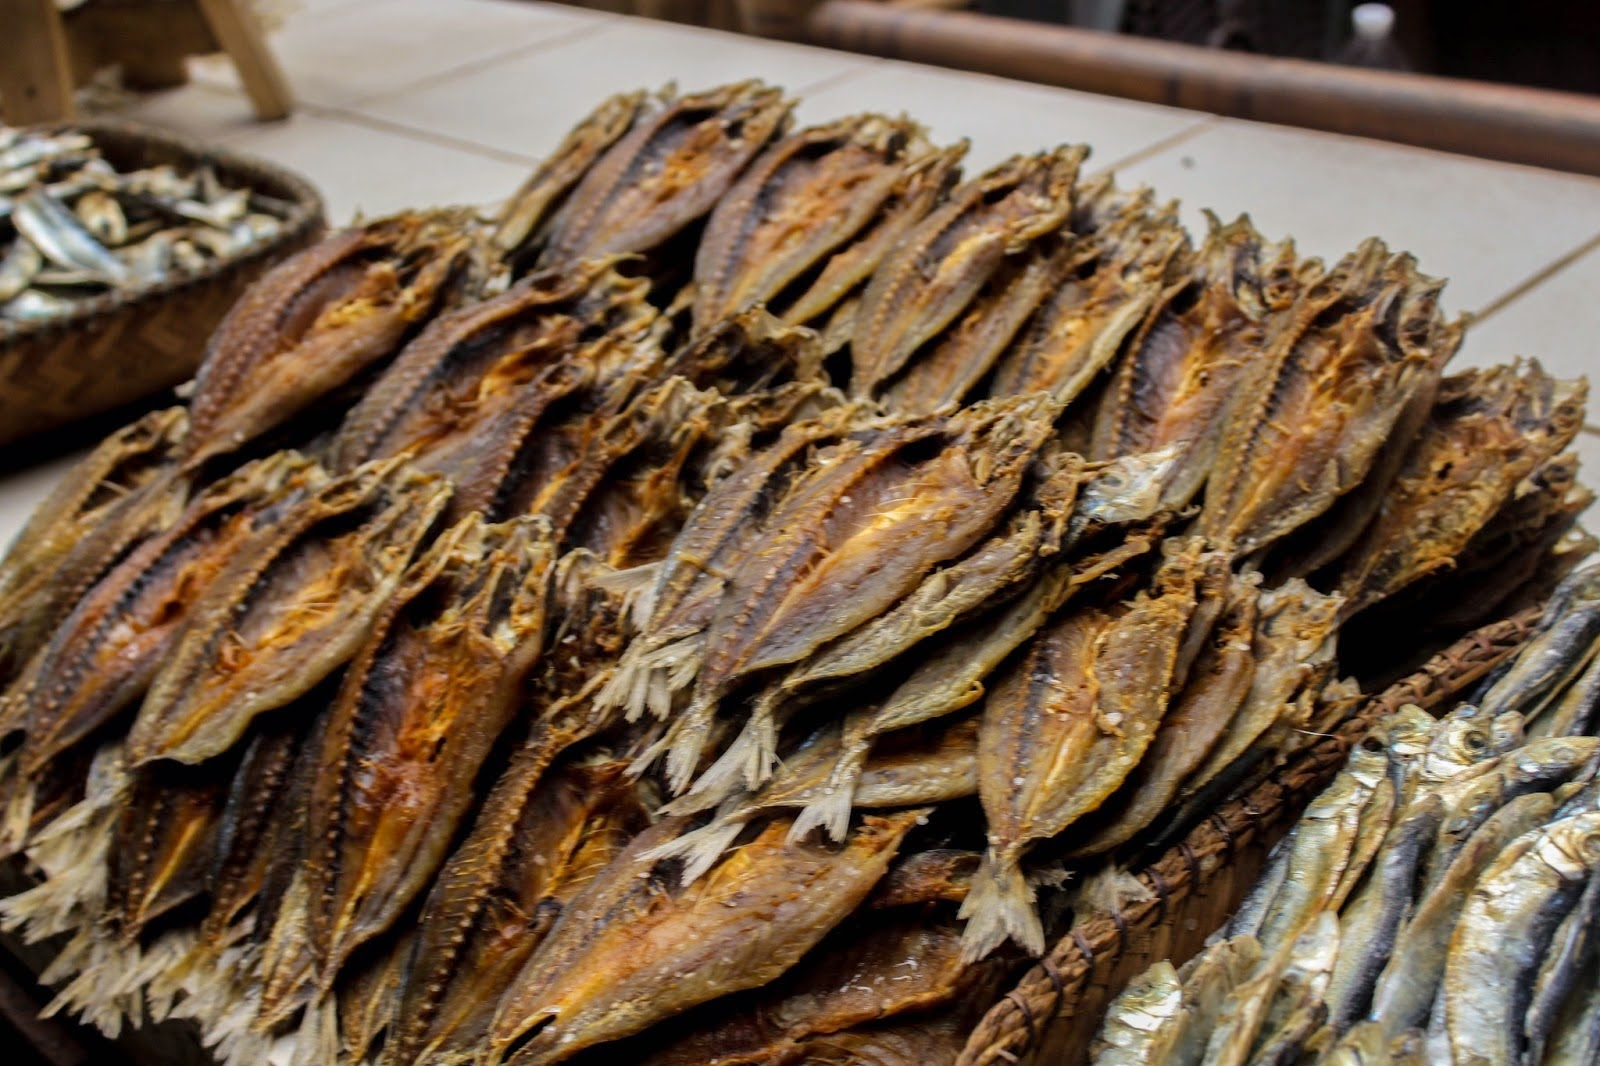 http://www.theguardian.com/global-development/2014/dec/31/new-fish-drying-method-in-burundi-boosts-quality-and-incomes